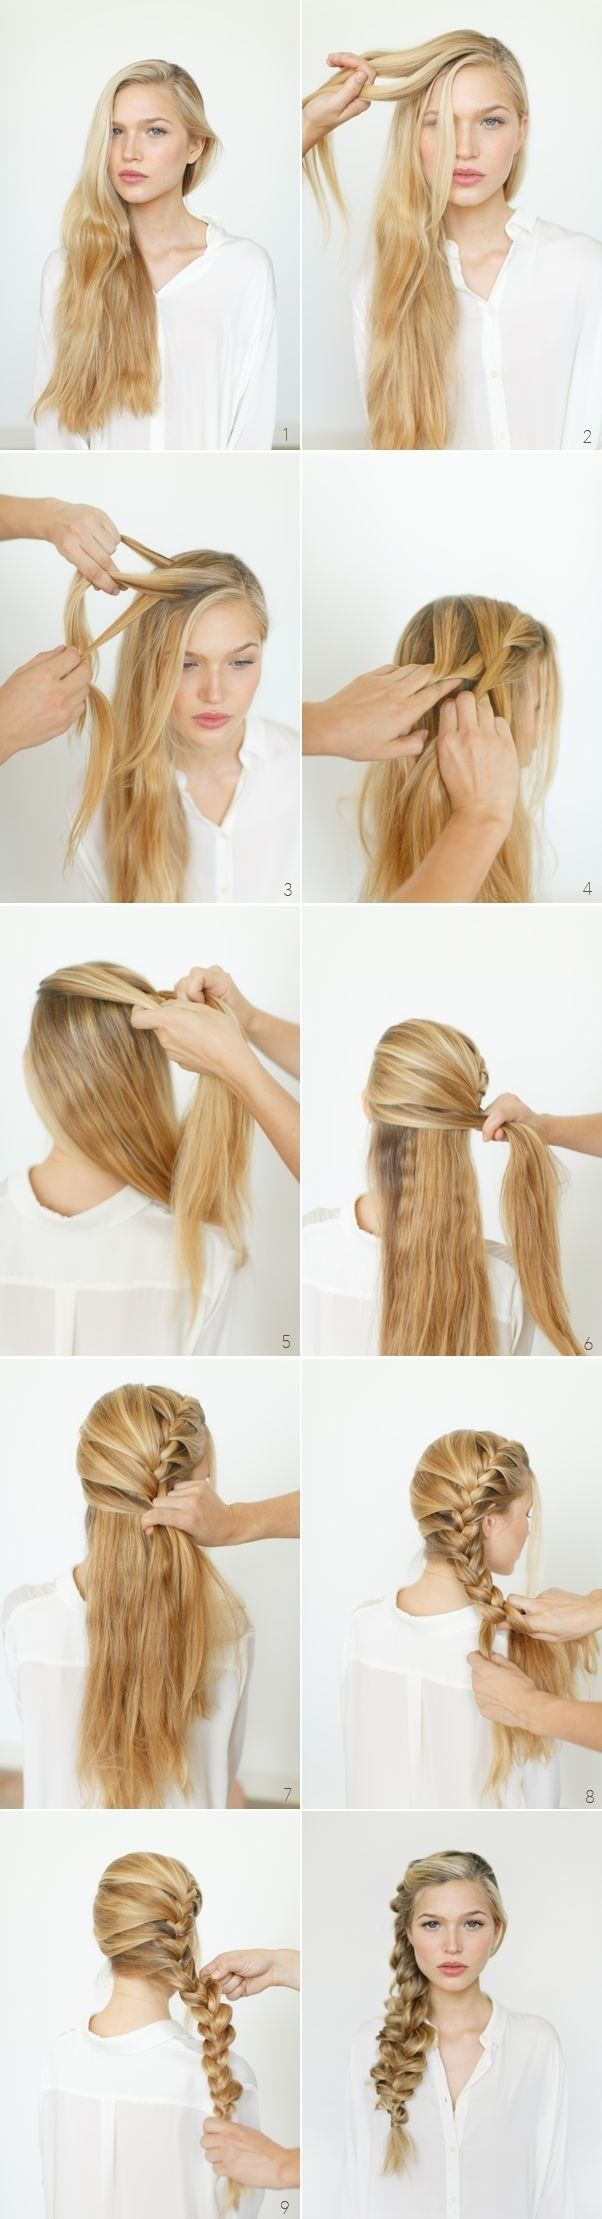 8 Cute Braided Hairstyles for Girls: Long Hair Ideas